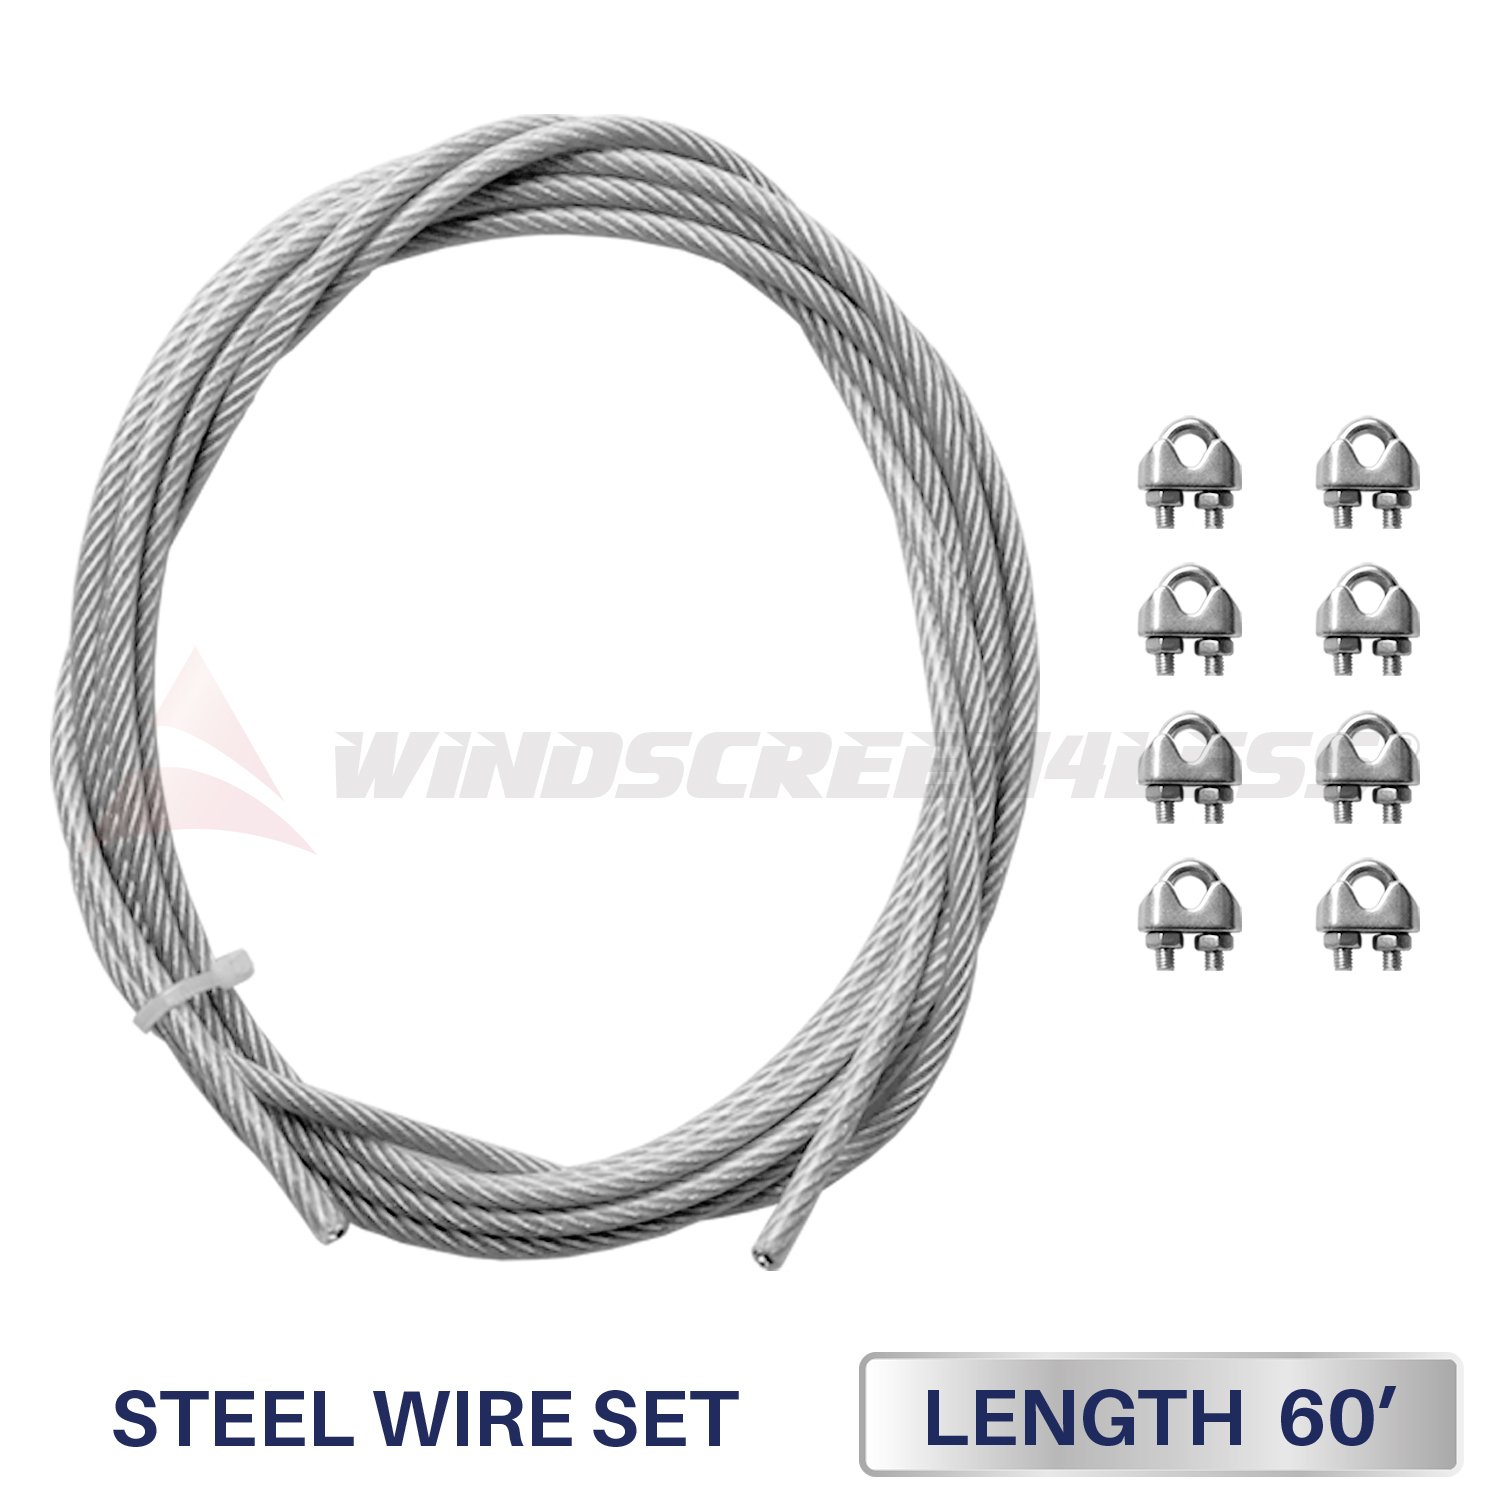 Windscreen4less Shade Sail Wire Rope and 8 Pcs Clips, Vinyl Coated Wire Cable Galvanized Metal Clamp, 3/16-Inch x 60 Feet by Windscreen4less